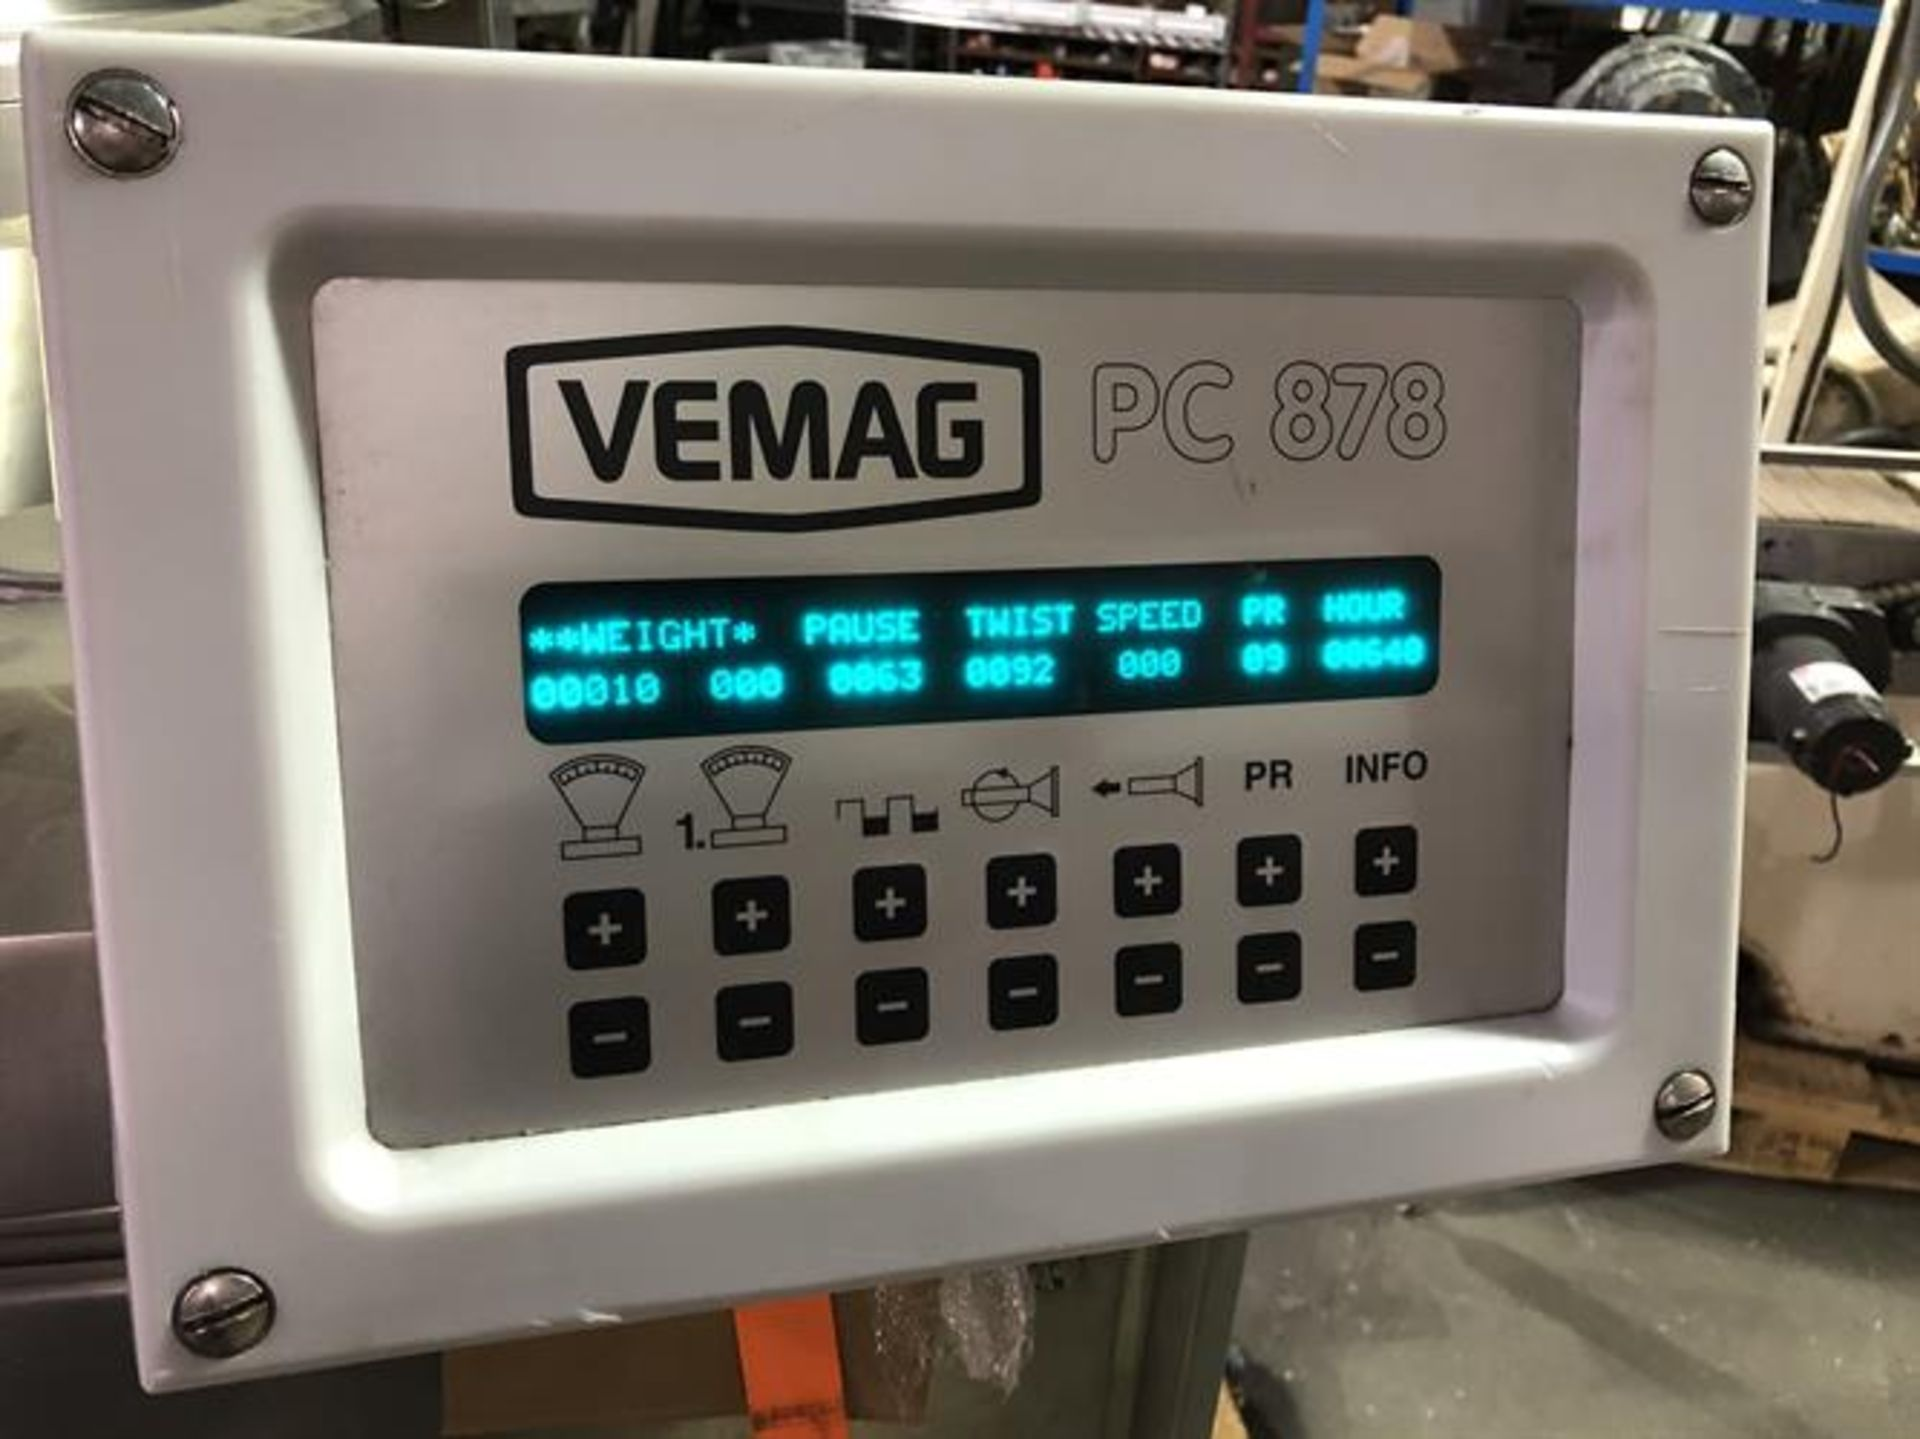 Vemag Robot 500 Stainless Steel Vacuum Stuffer - Machine has been completely reconditioned - PC - Image 7 of 31